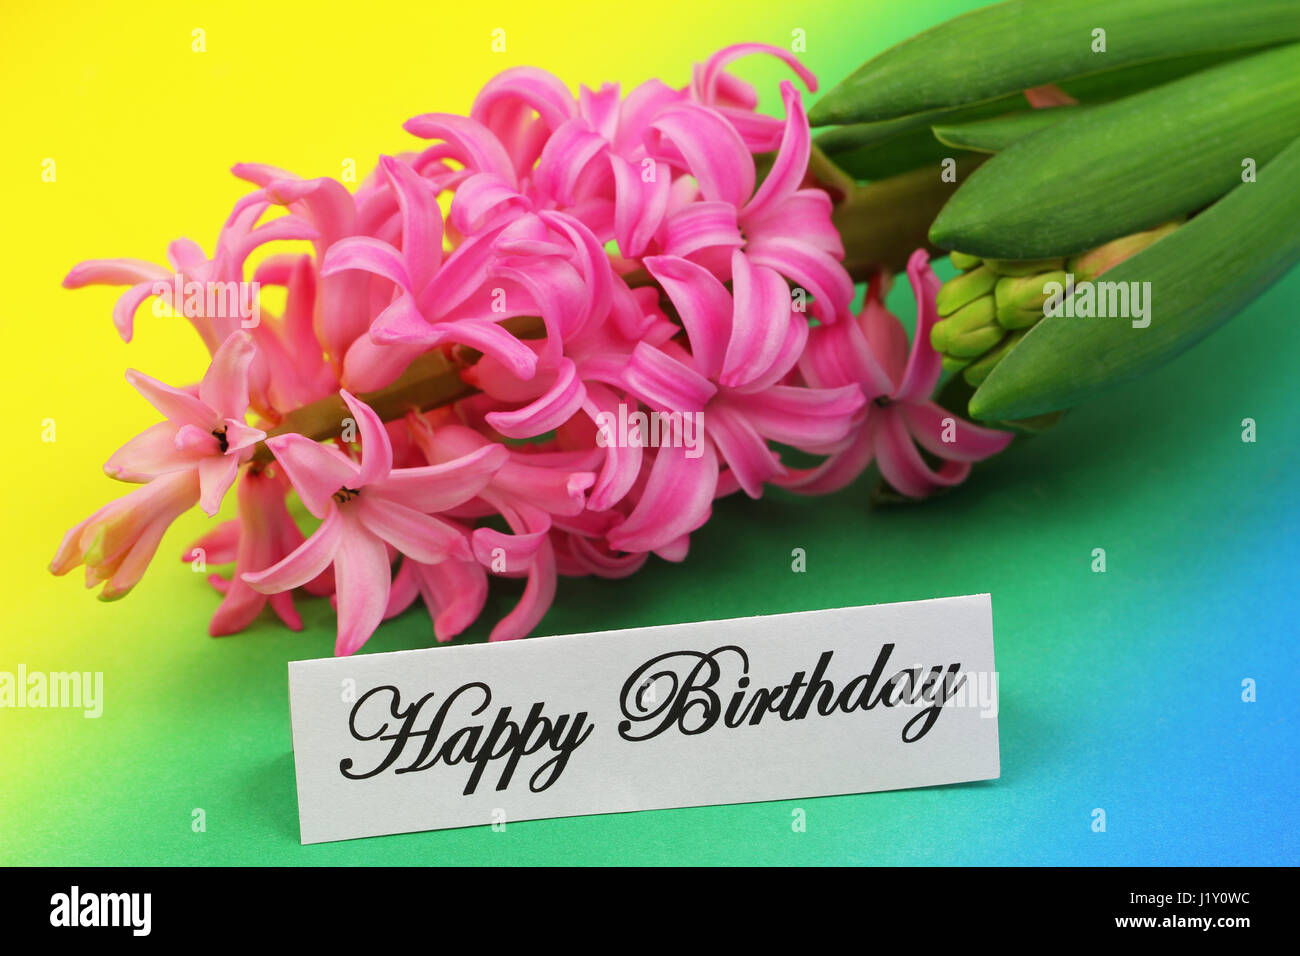 Happy Birthday Card With Pink Hyacinth Flower On Colorful Background